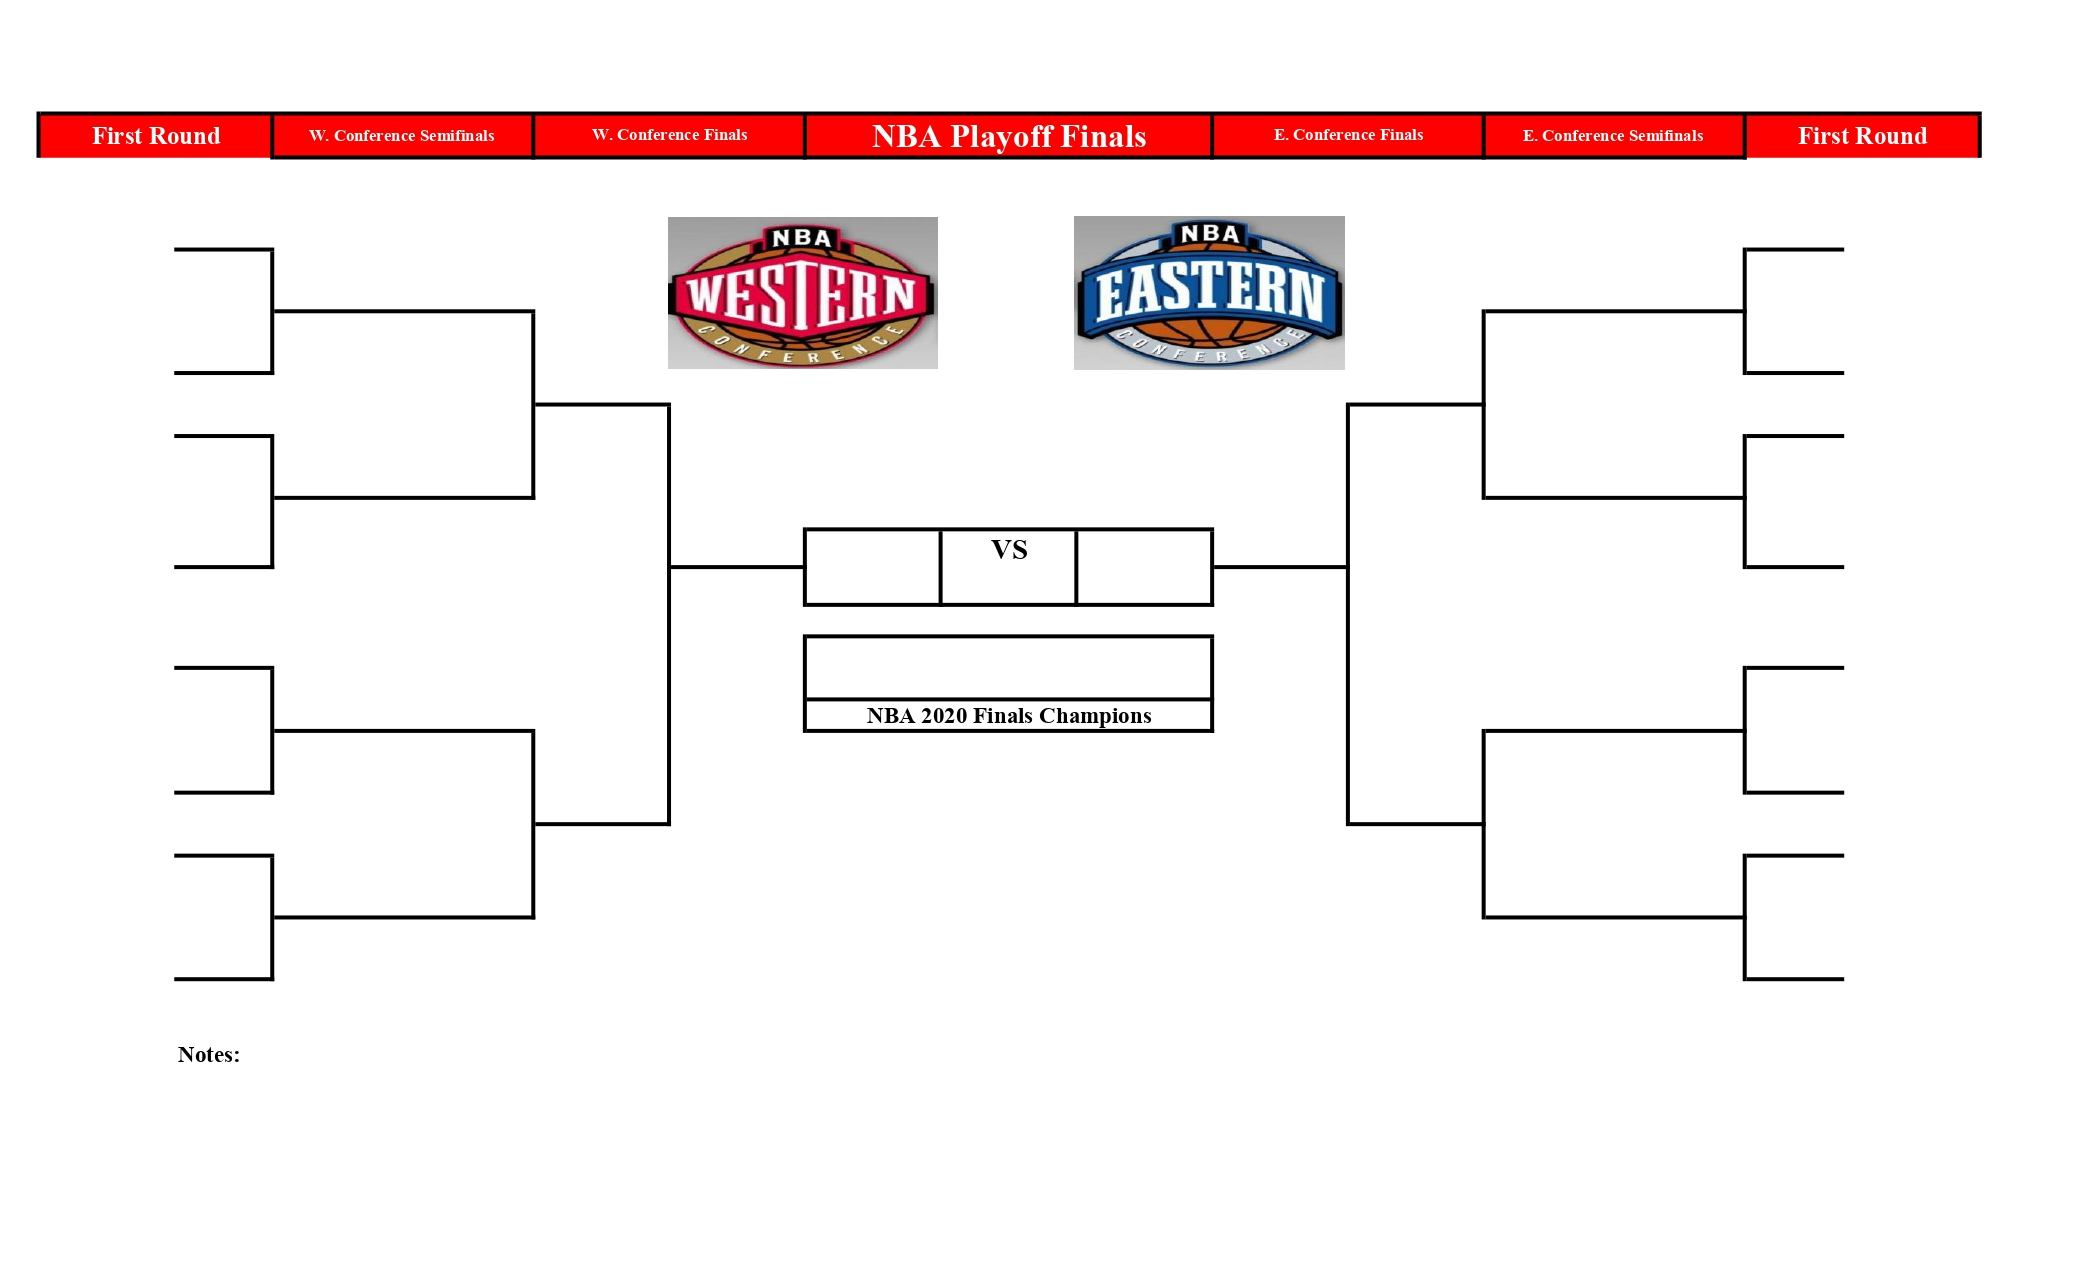 2020 NBA Playoff Bracket